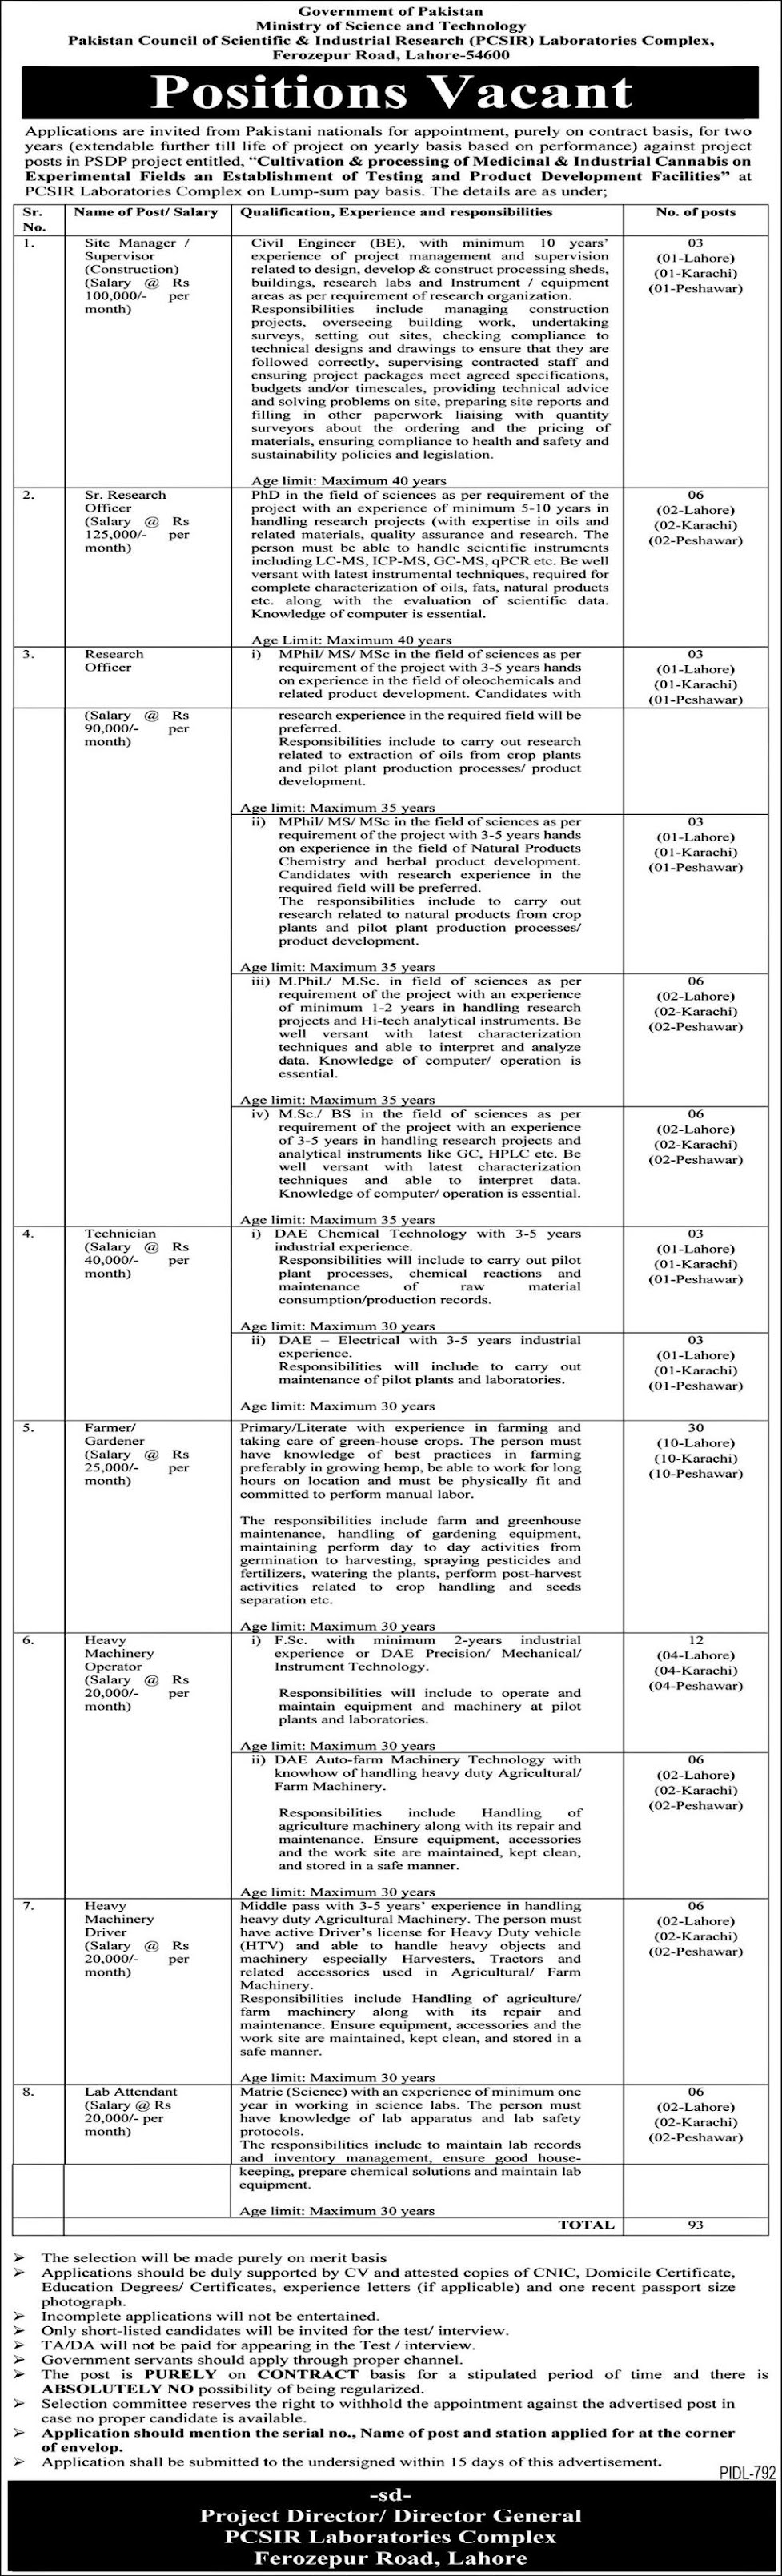 Pakistan Council of Scientific and Industrial Research PCSIR Laboratories Complex Jobs 2021